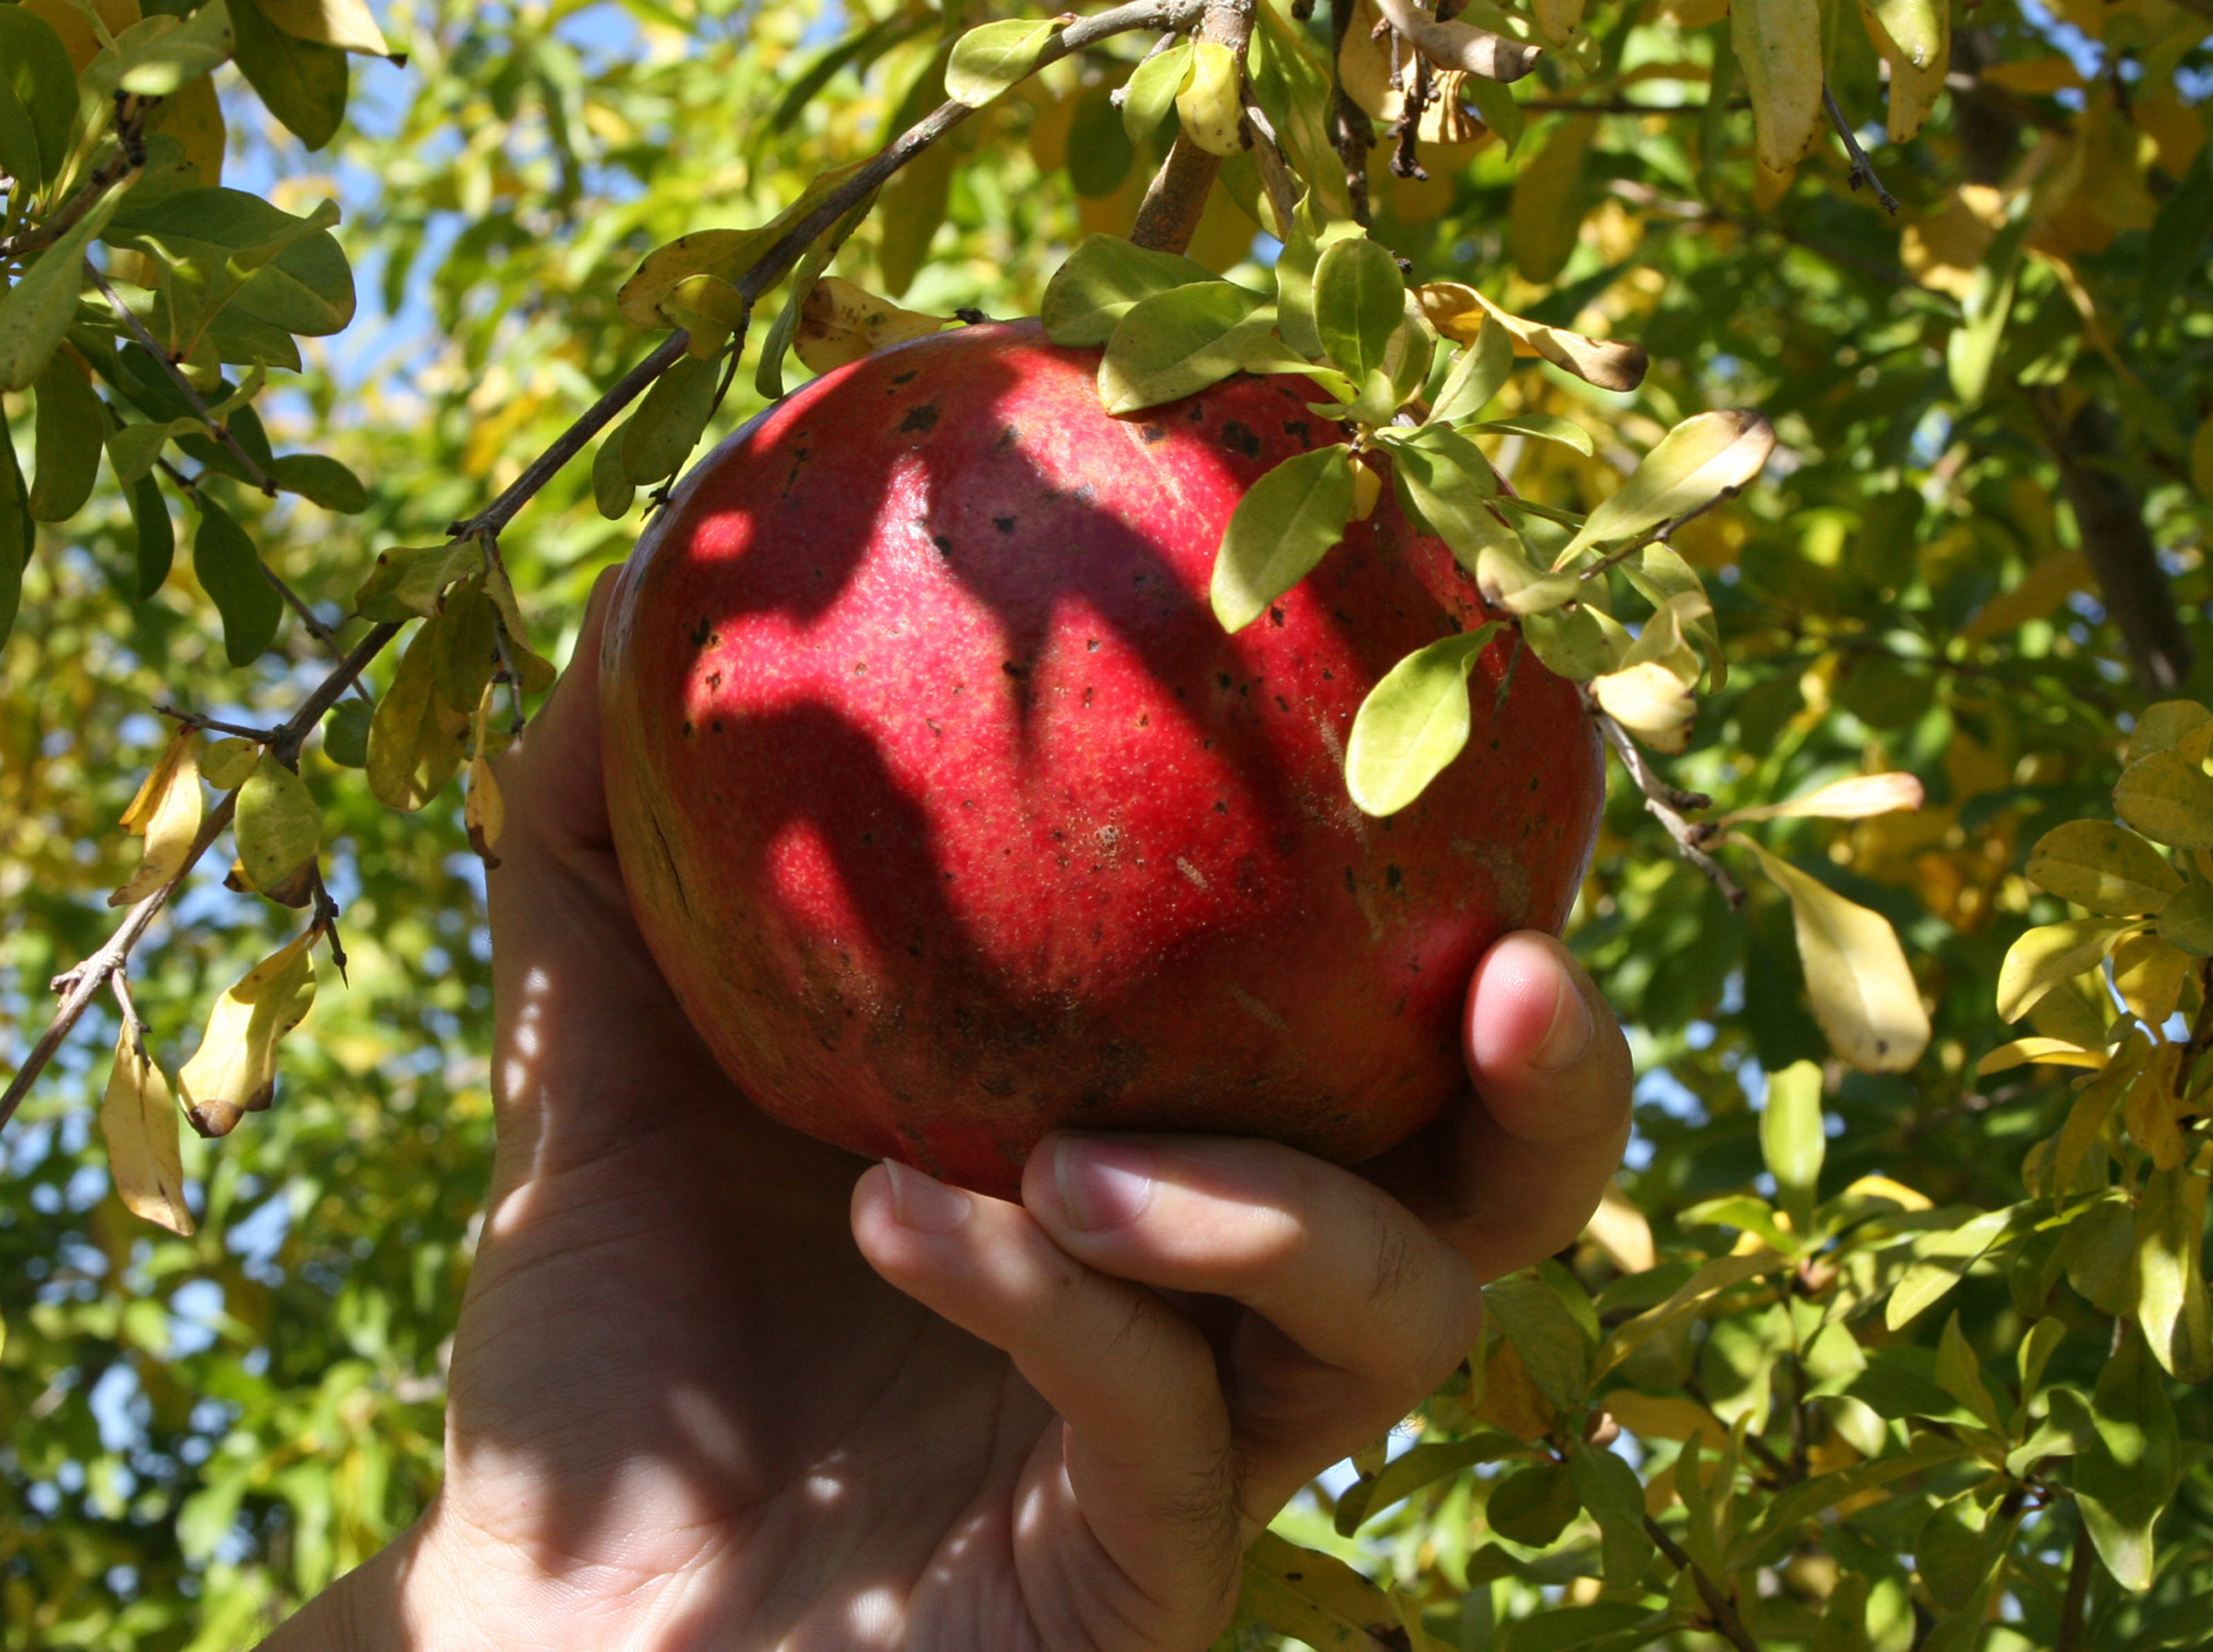 Dan MacLean, an assistant professor of horticulture on UGA's Tifton campus, checks a pomegranate for ripeness.